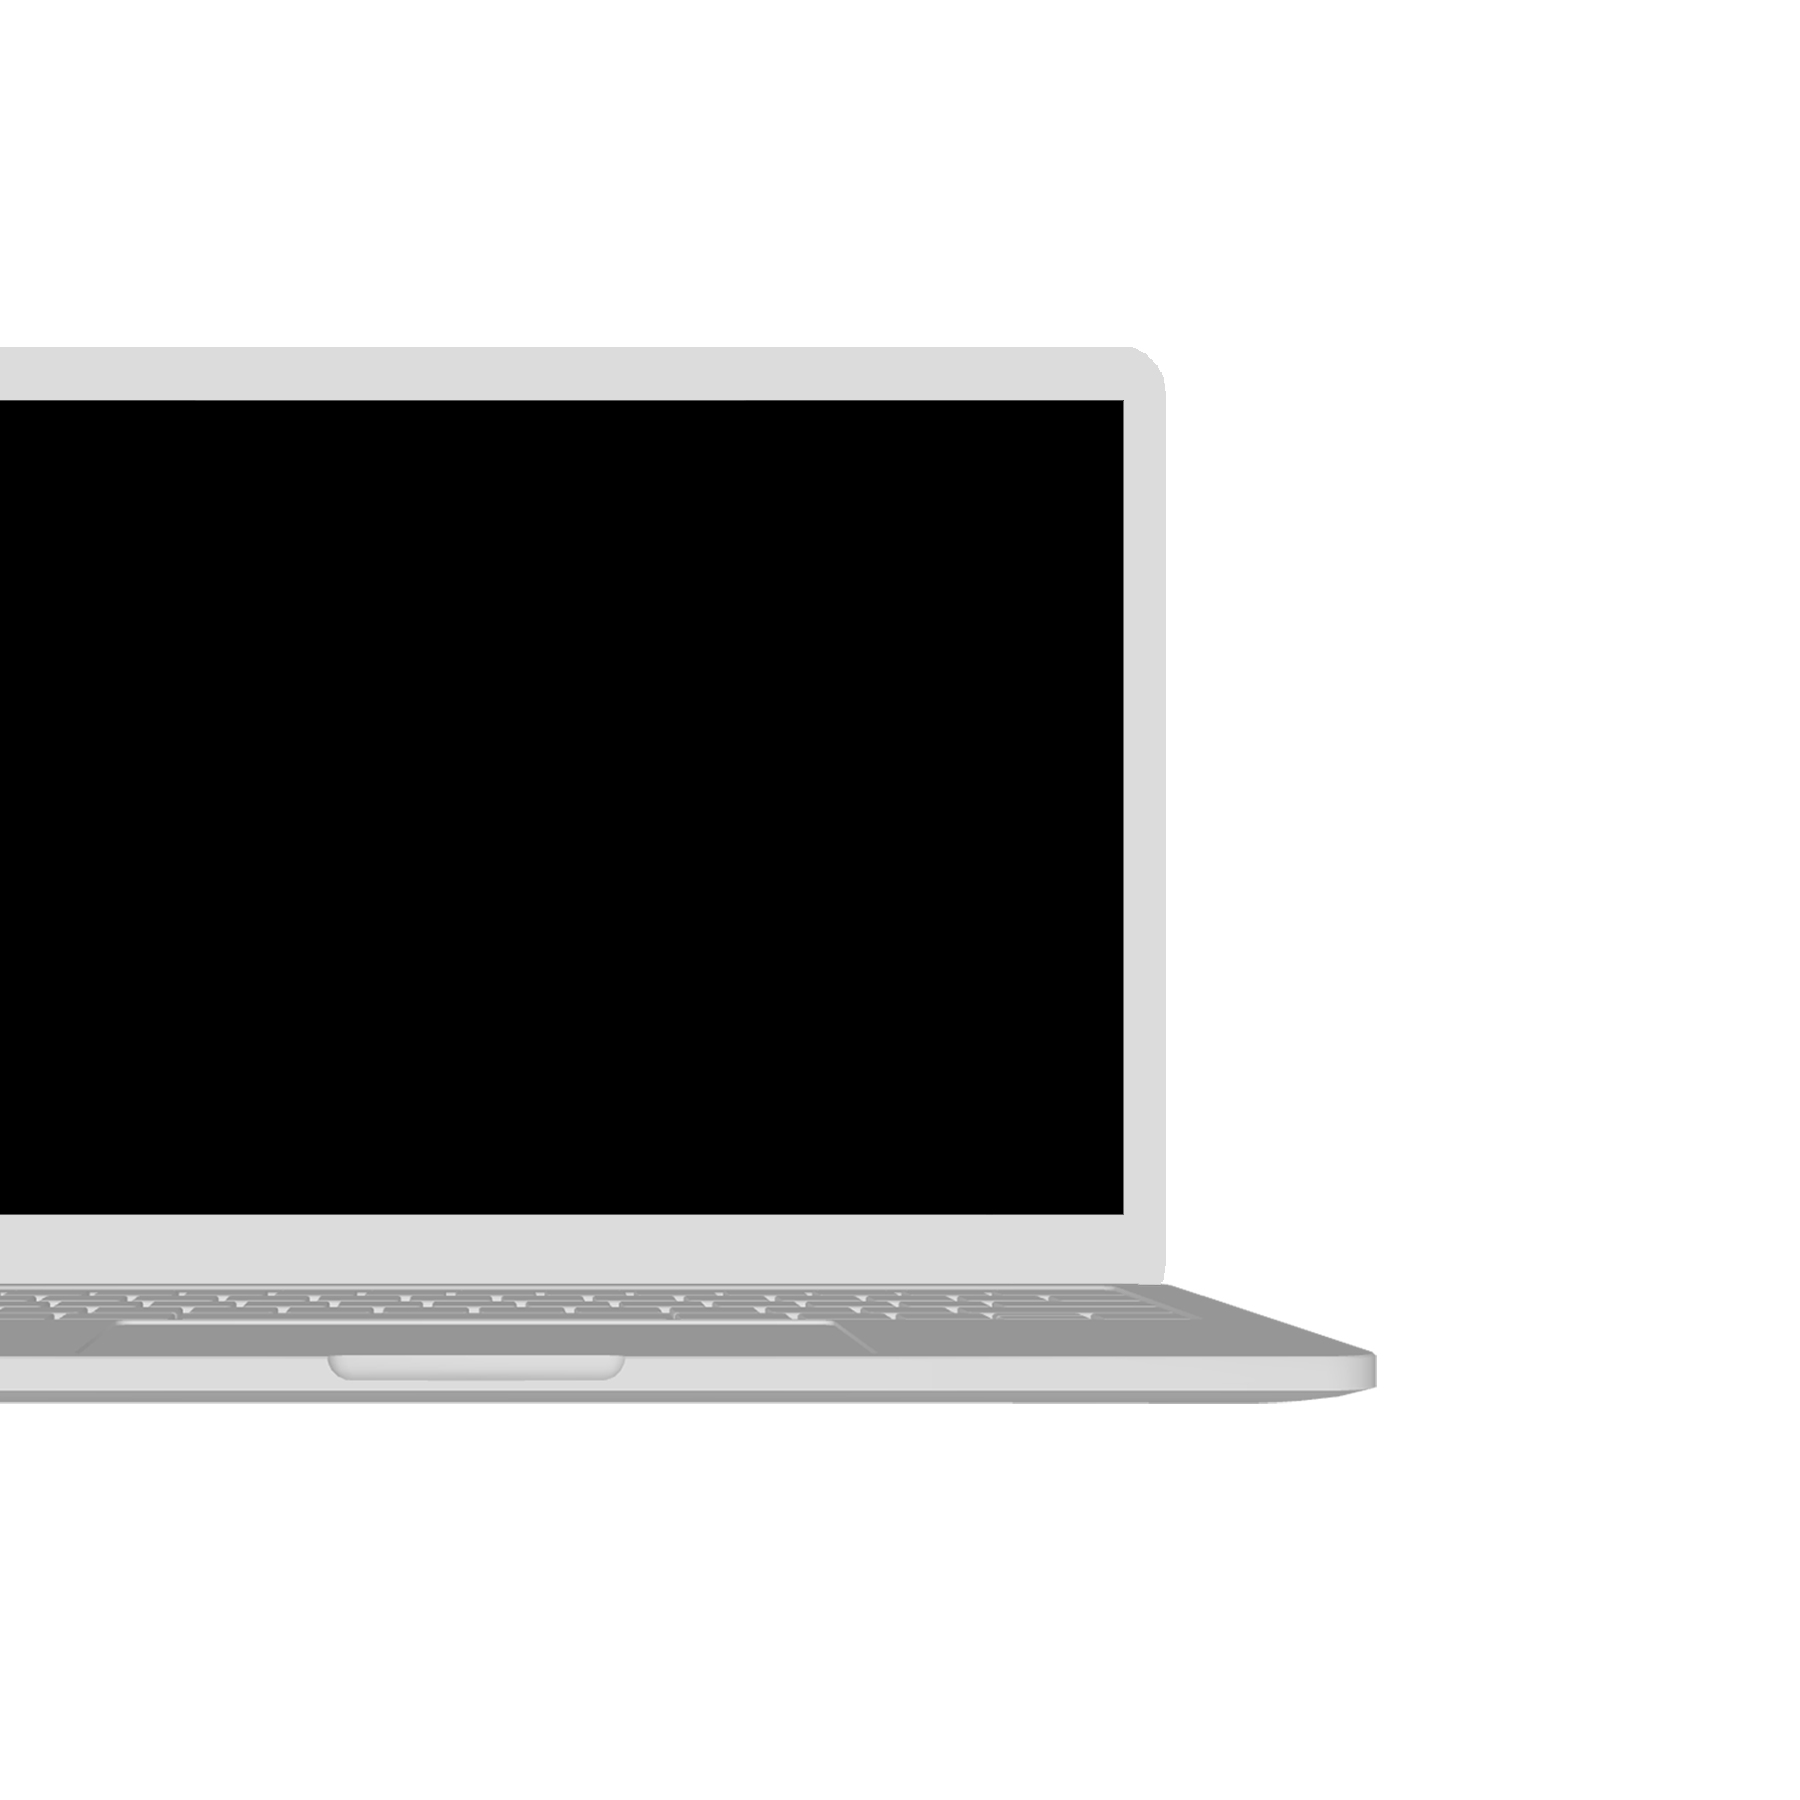 """A grey generic laptop displaying a black screen with white text. The text reads """"What's Expected of Us"""" in large caps. Beneath it, the words """"a short science fiction story"""" appear randomly one letter at a time."""